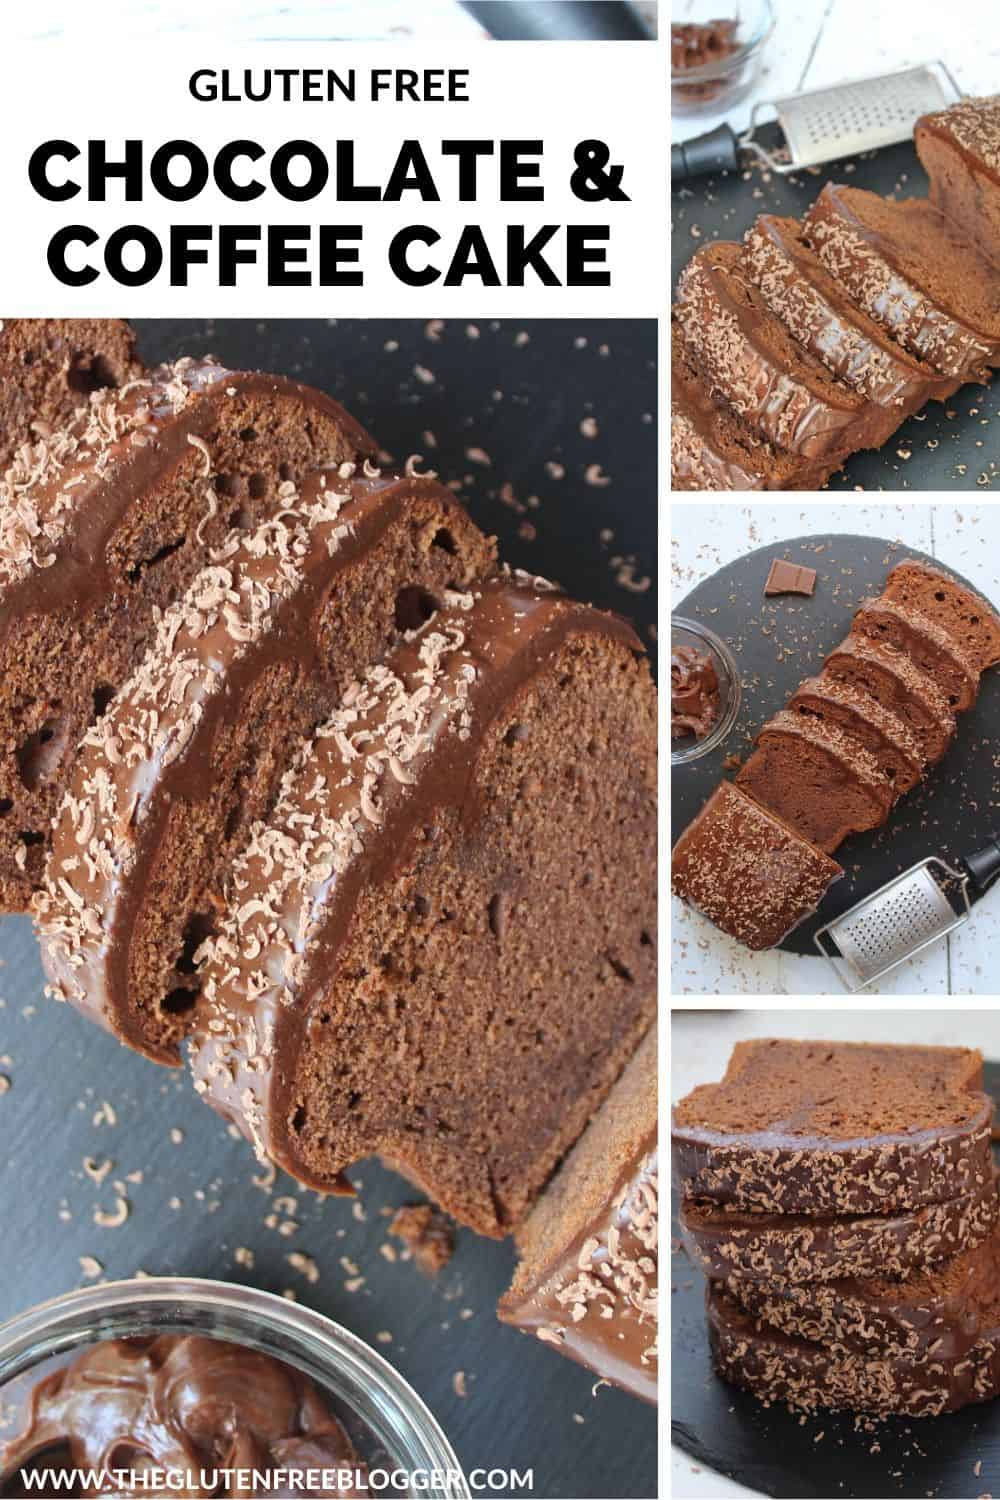 GLUTEN FREE CHOCOLATE AND COFFEE CAKE LOAF CAKE MOCHA CHOCACHINO RECIPE (1)